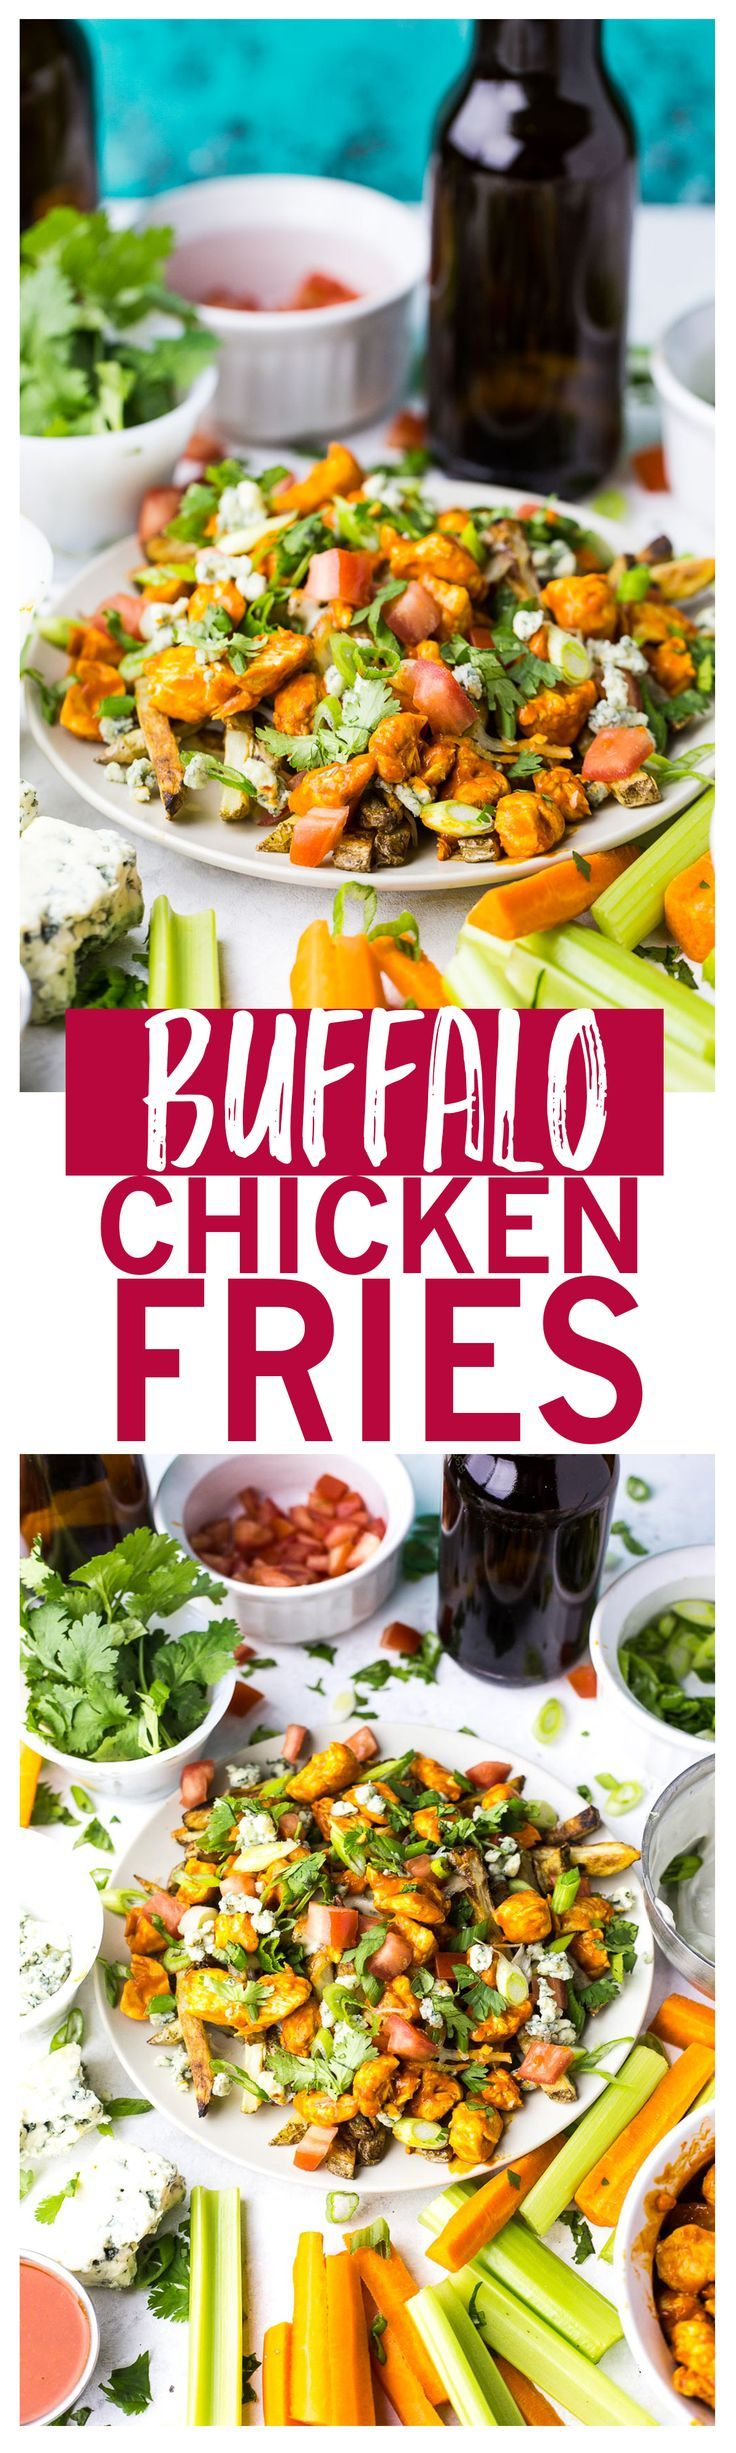 Loaded Buffalo Chicken Fries are a healthier alternative to game day food, made with homemade oven fries and blue cheese!